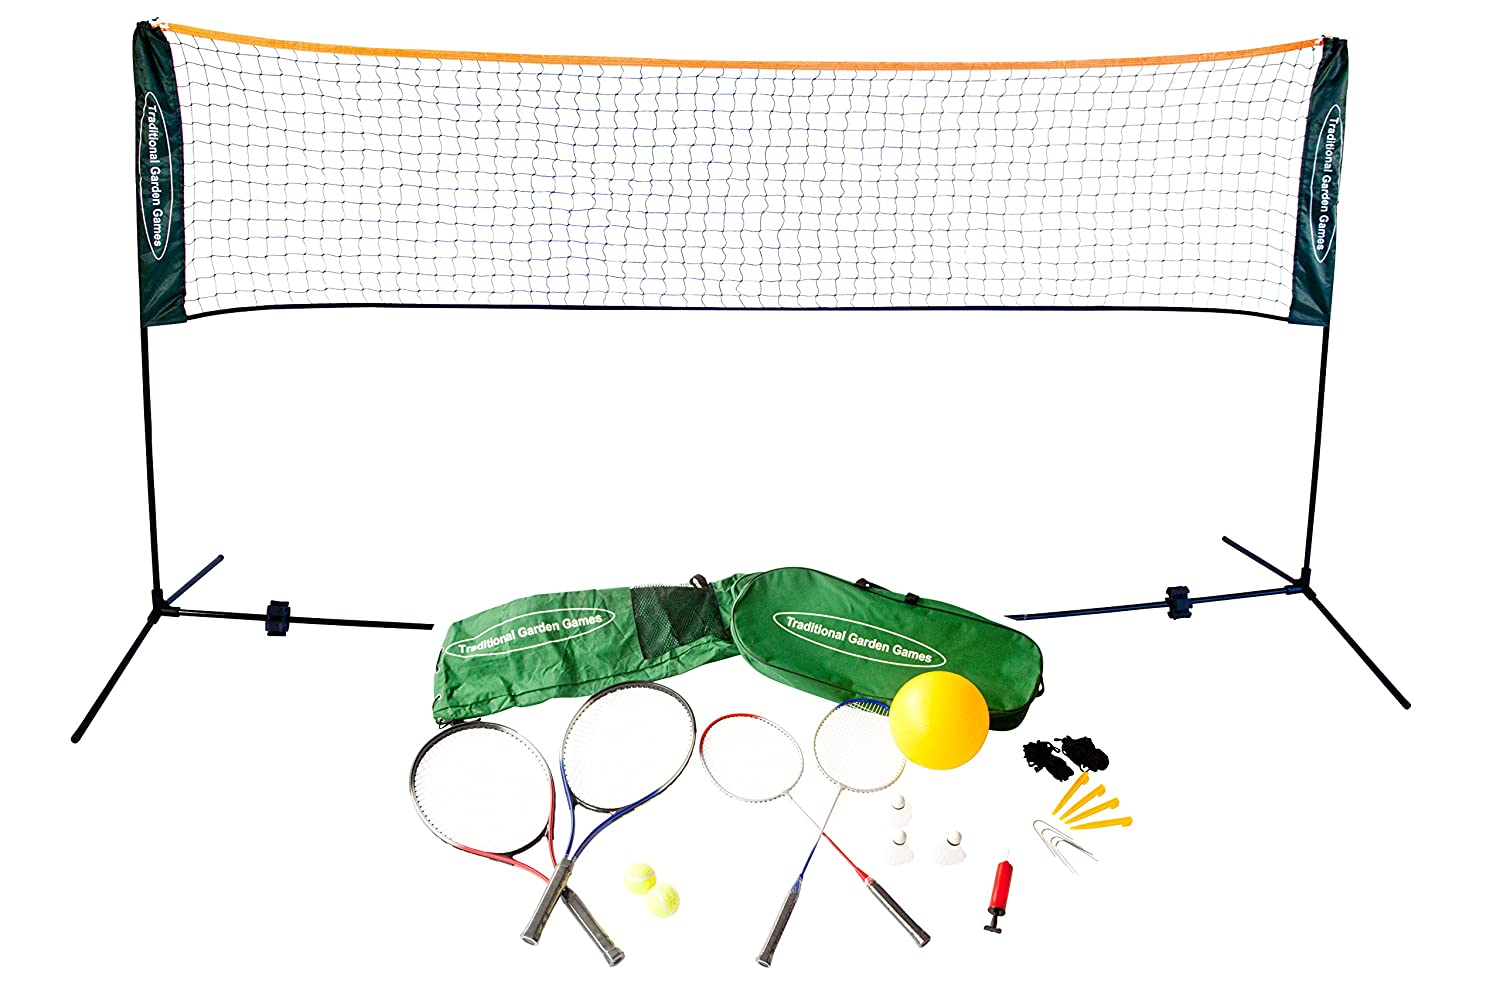 Traditional Garden Games 5 m Badminton Volleyball und Tennis Spielset